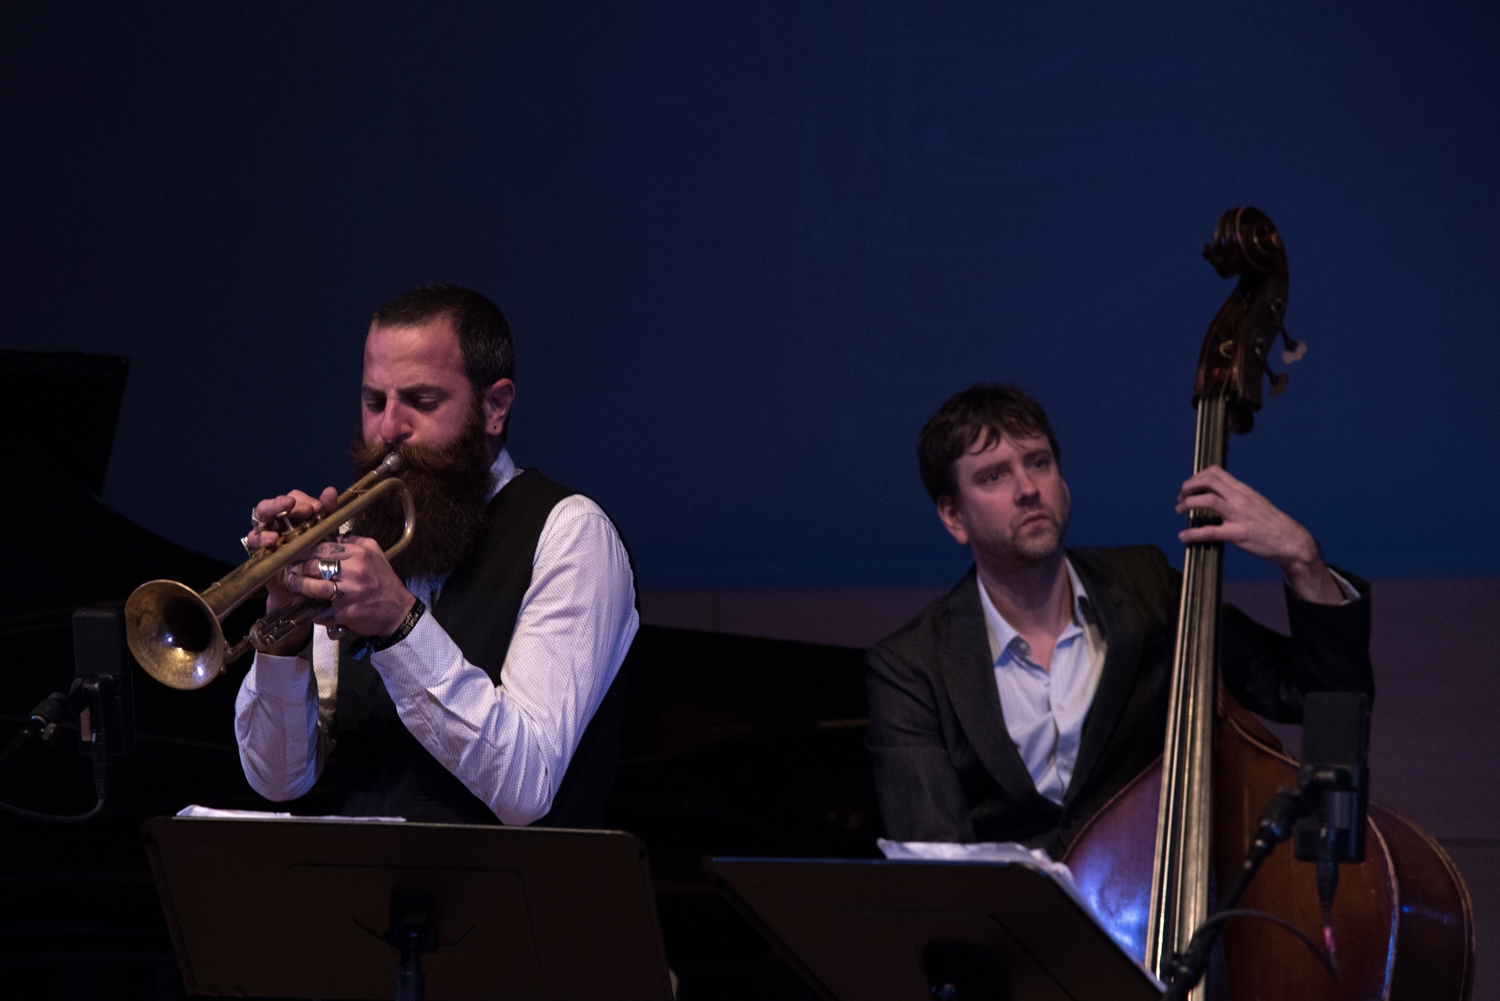 Mark Turner Quartet - Avishai Cohen - trumpet, and Joe Martin - bass, performing at New School Tishman Auditorium - ECM Records Stage on Friday night, January 15.